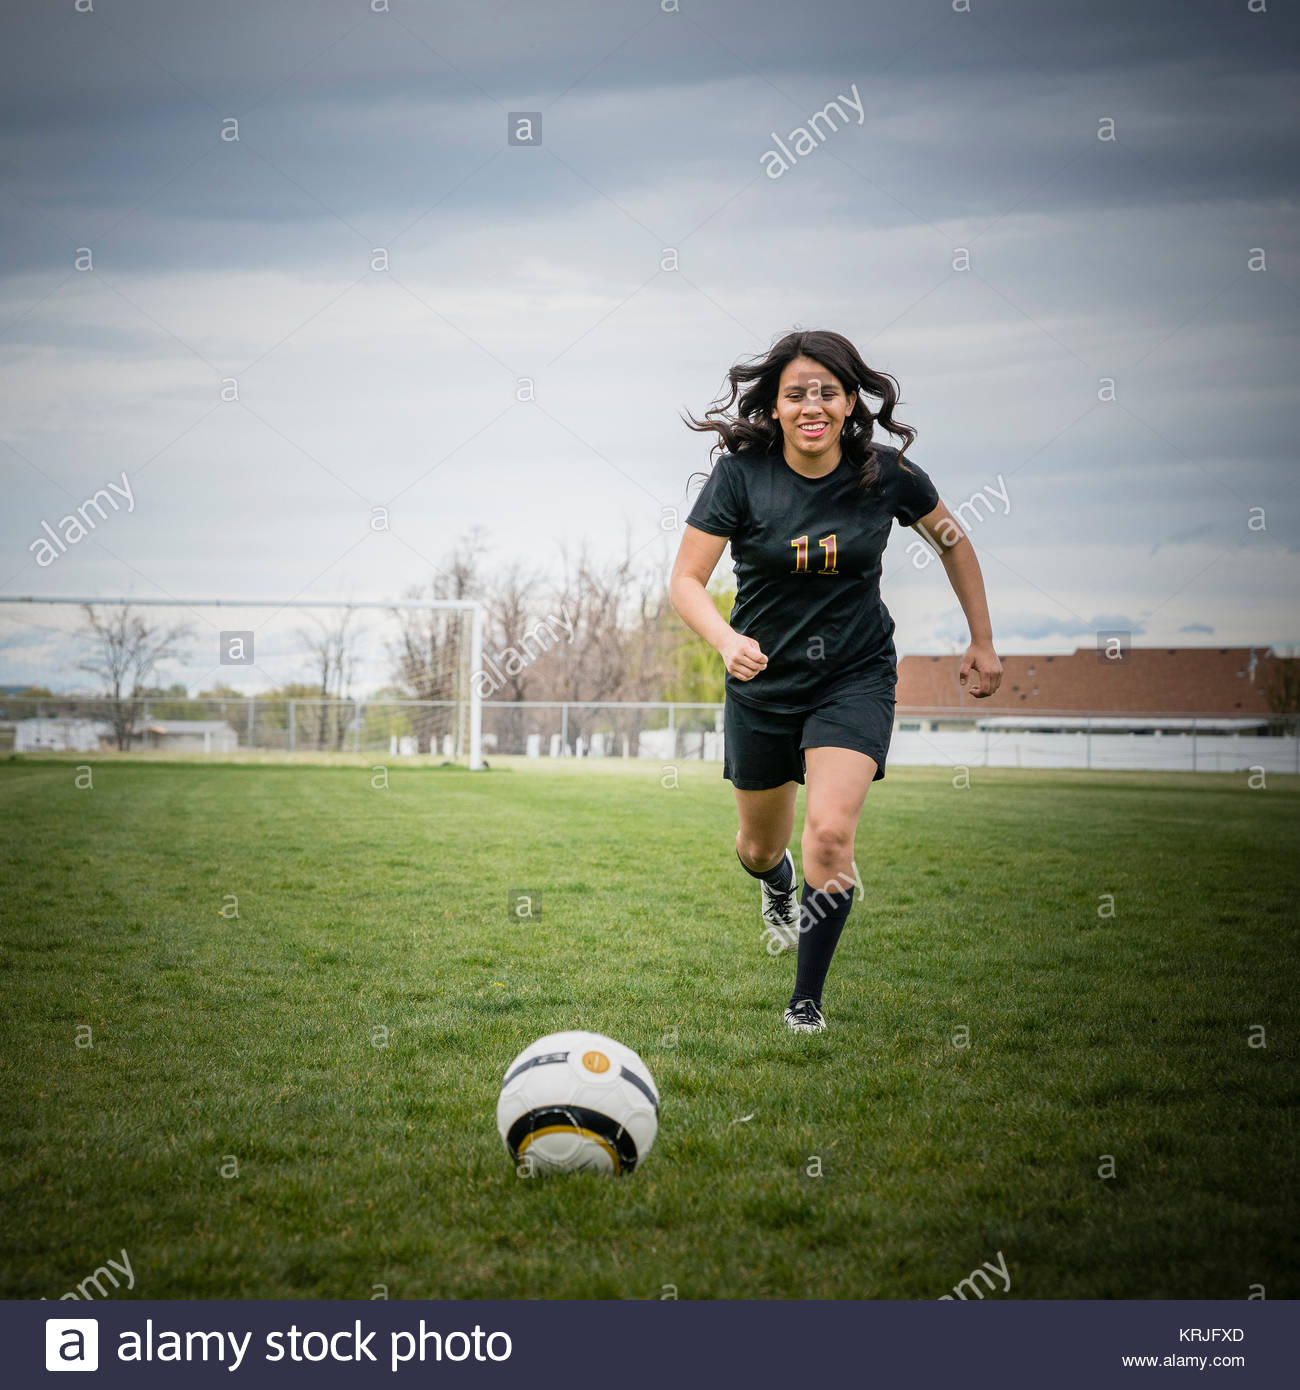 Smiling woman dribbling soccer ball in field - Stock Image